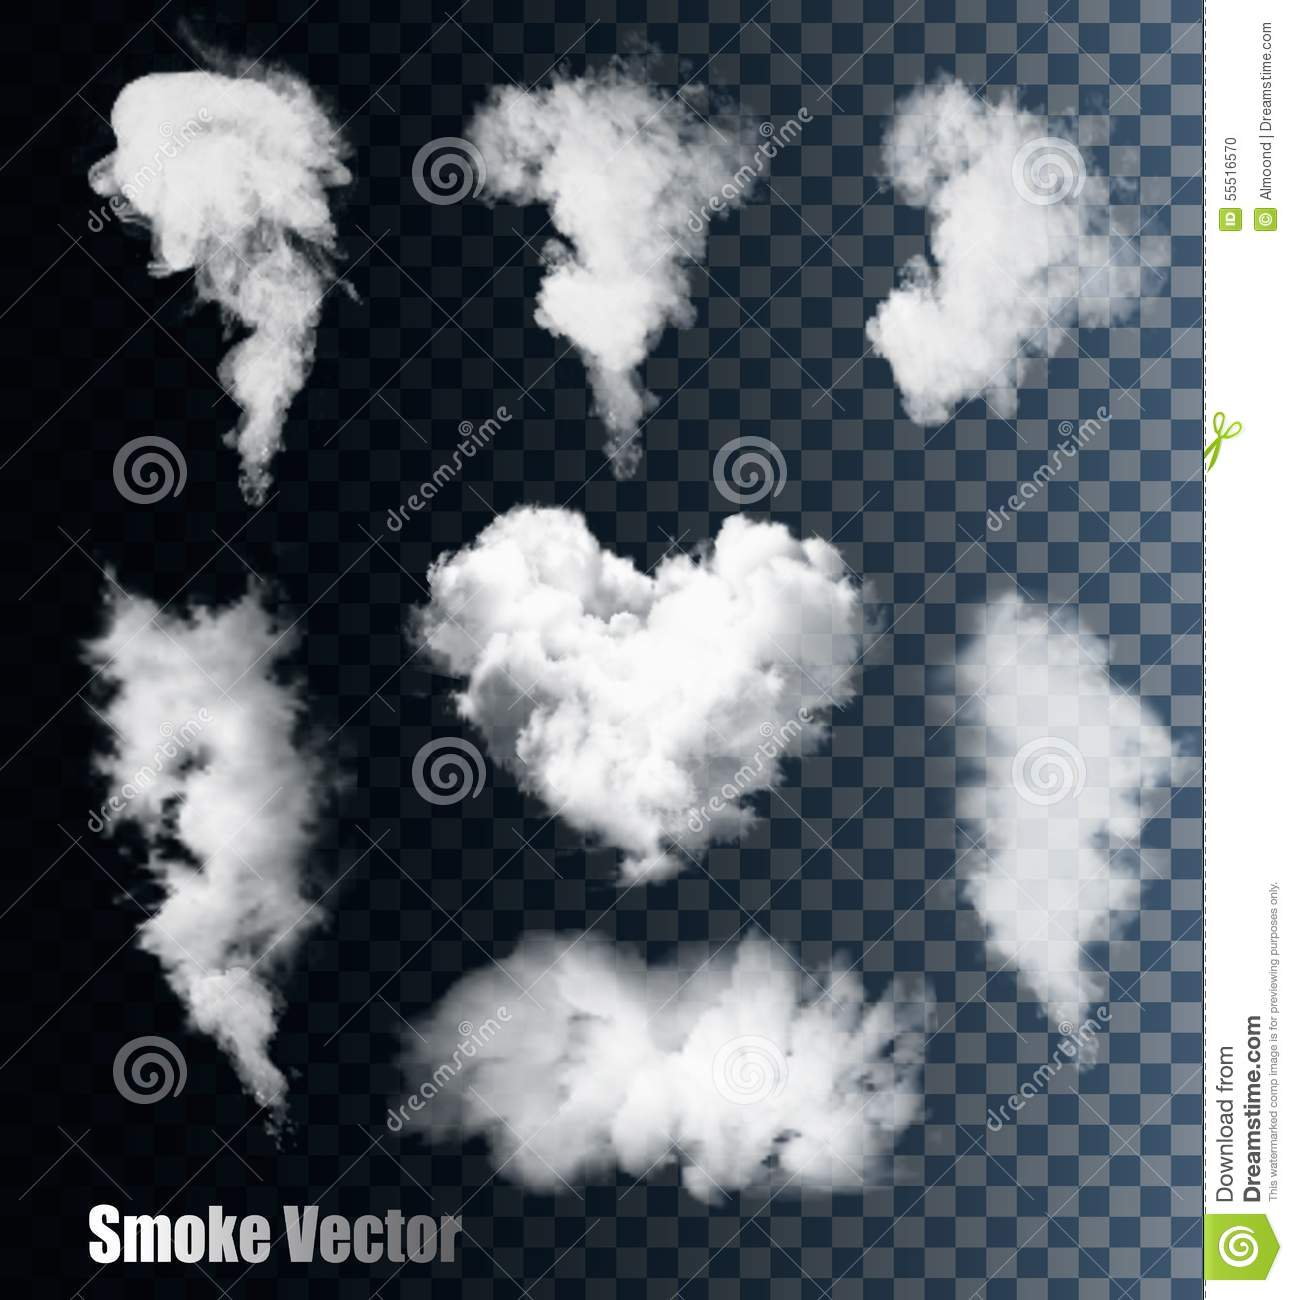 smoke vectors on transparent background  stock vector